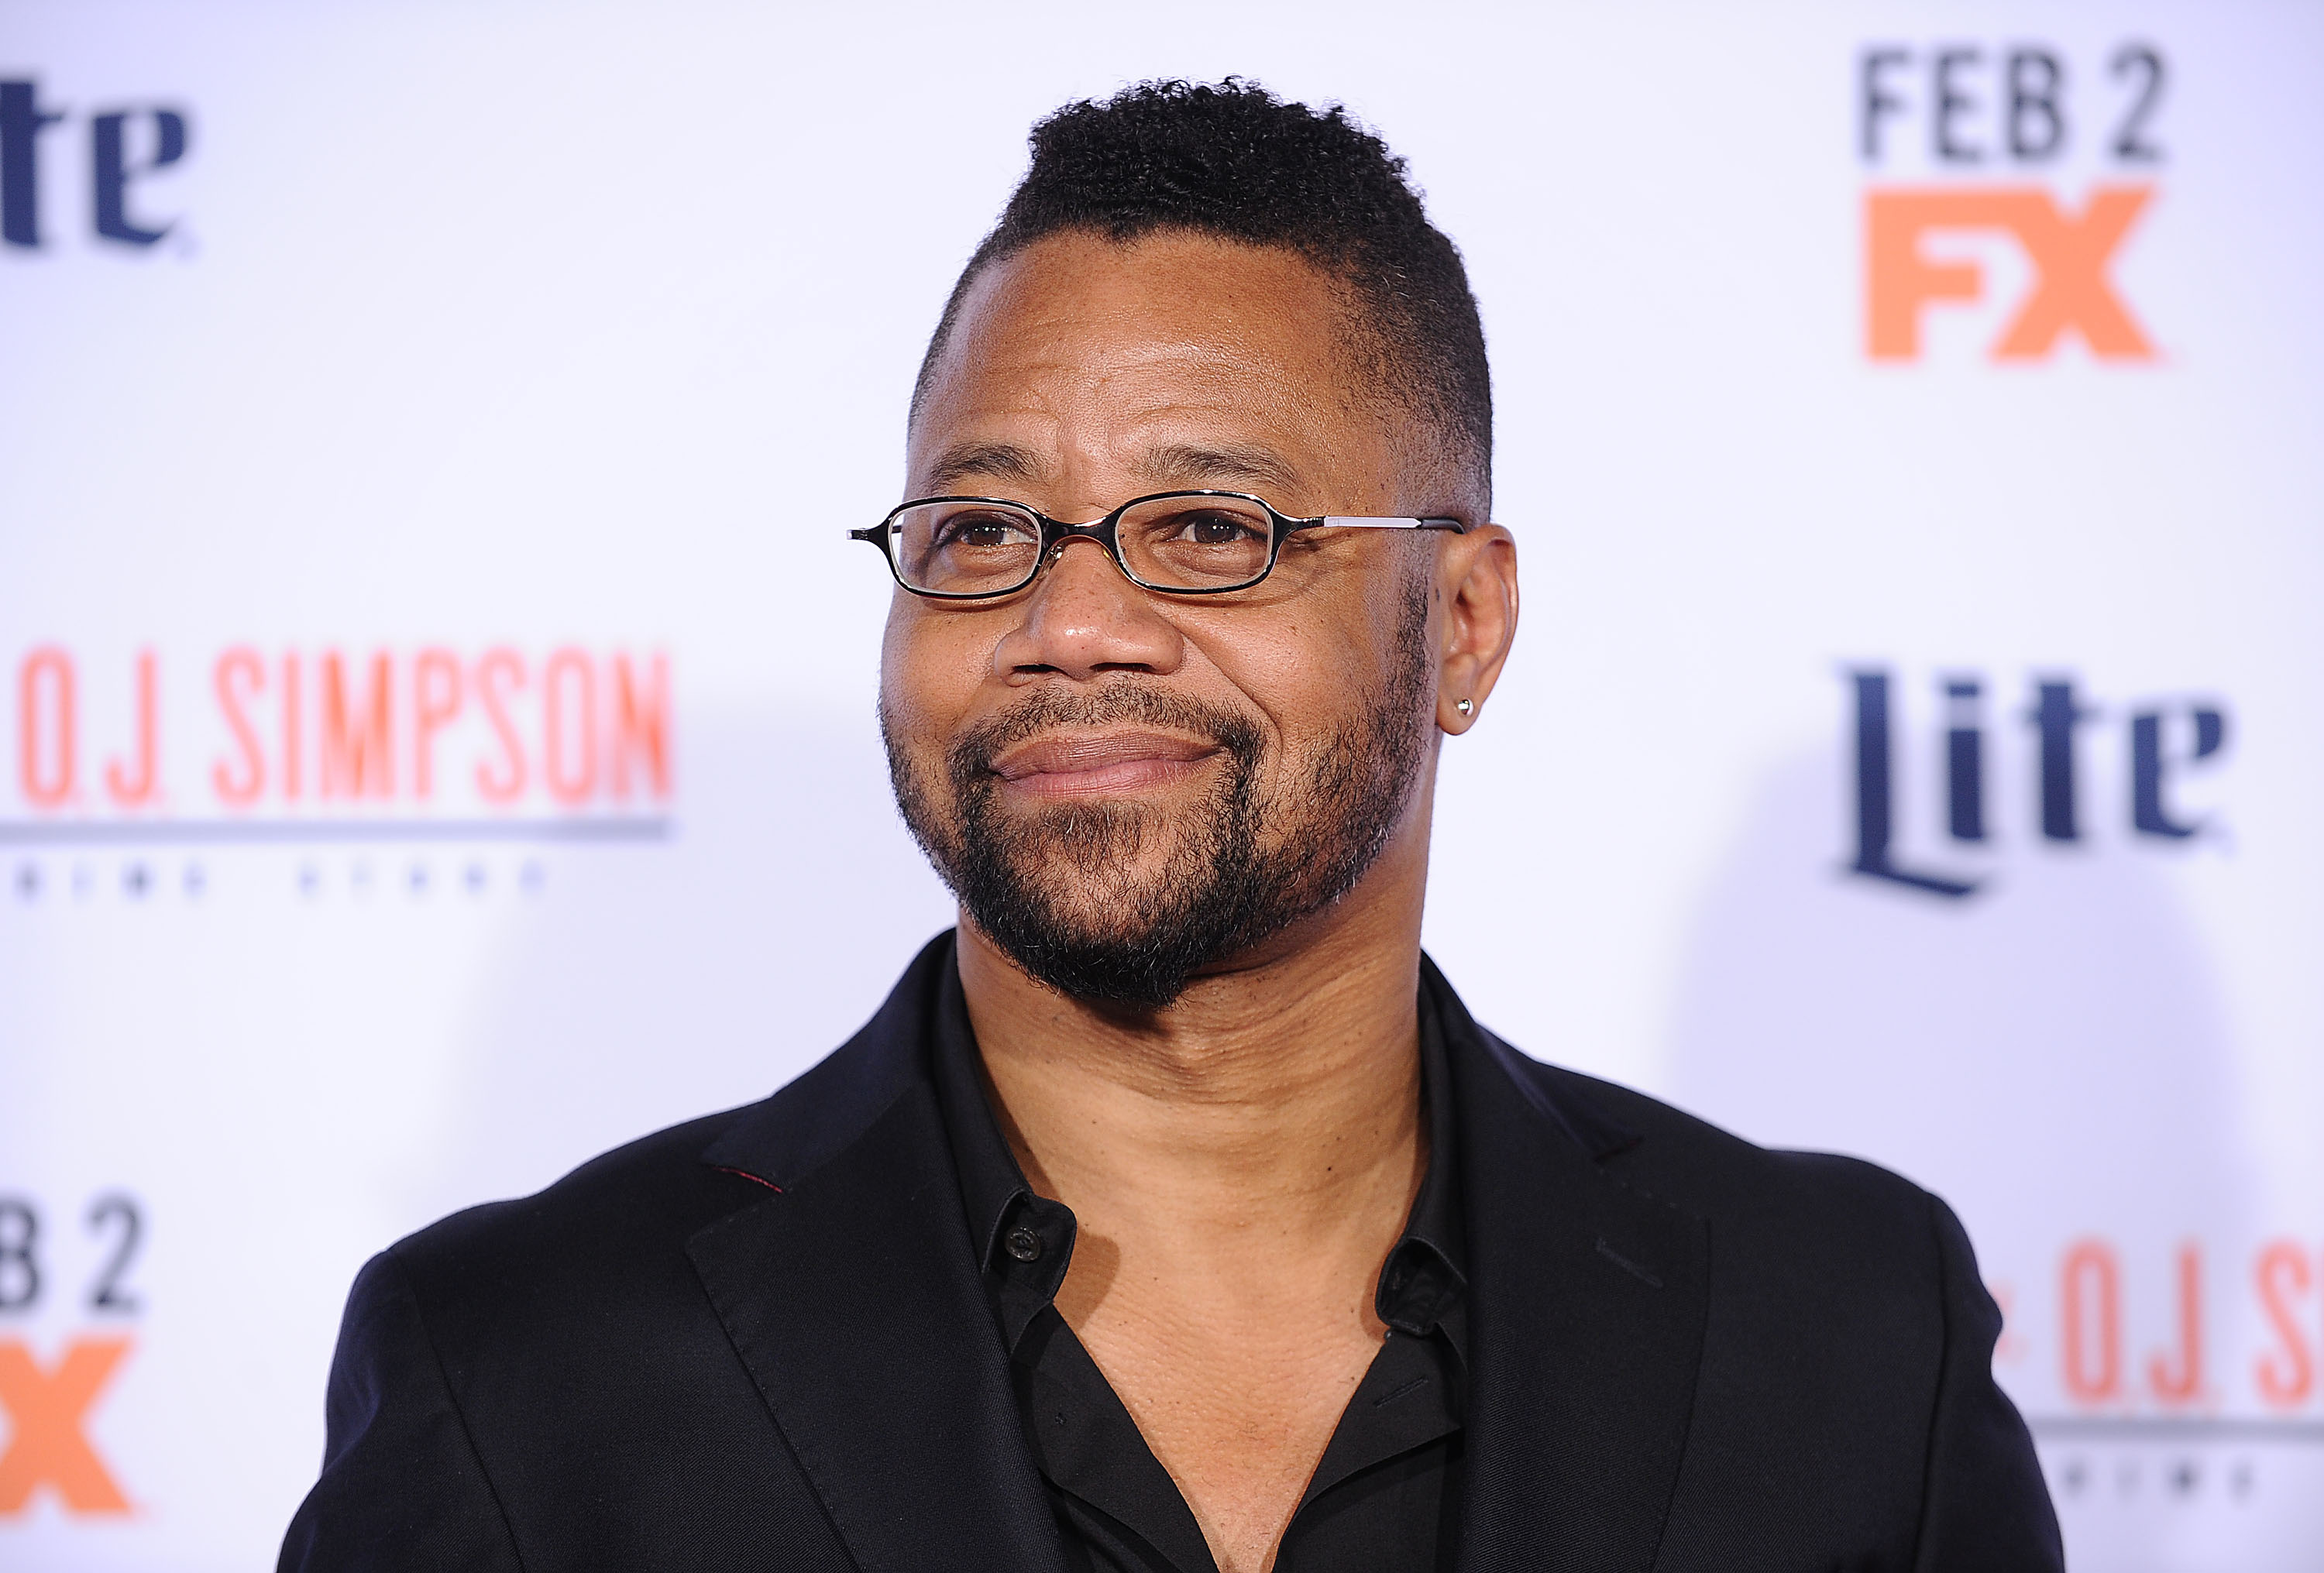 Actor Cuba Gooding Jr. attends the premiere of  American Crime Story - The People V. O.J. Simpson  on Jan. 27, 2016 in Westwood, Calif.